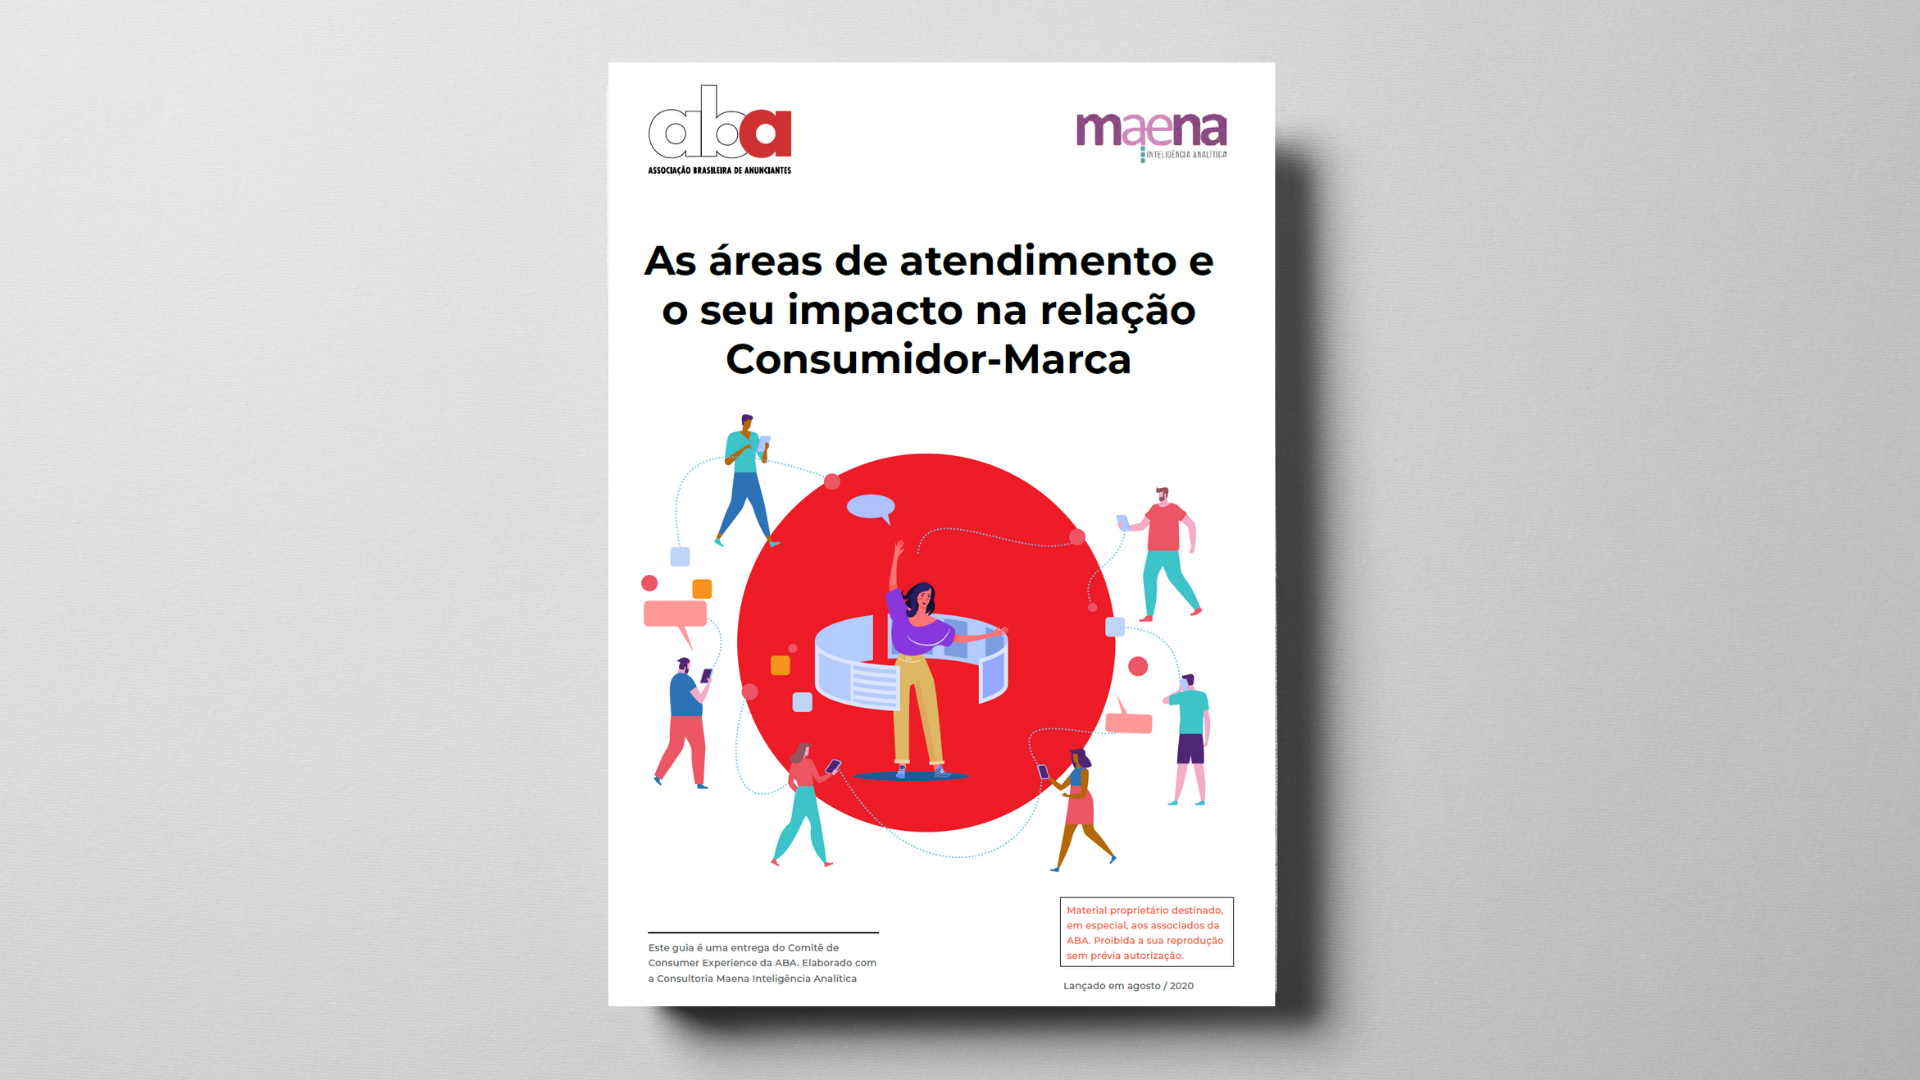 ABA-Brazil_customer service study cover_Aug20-1.PNG